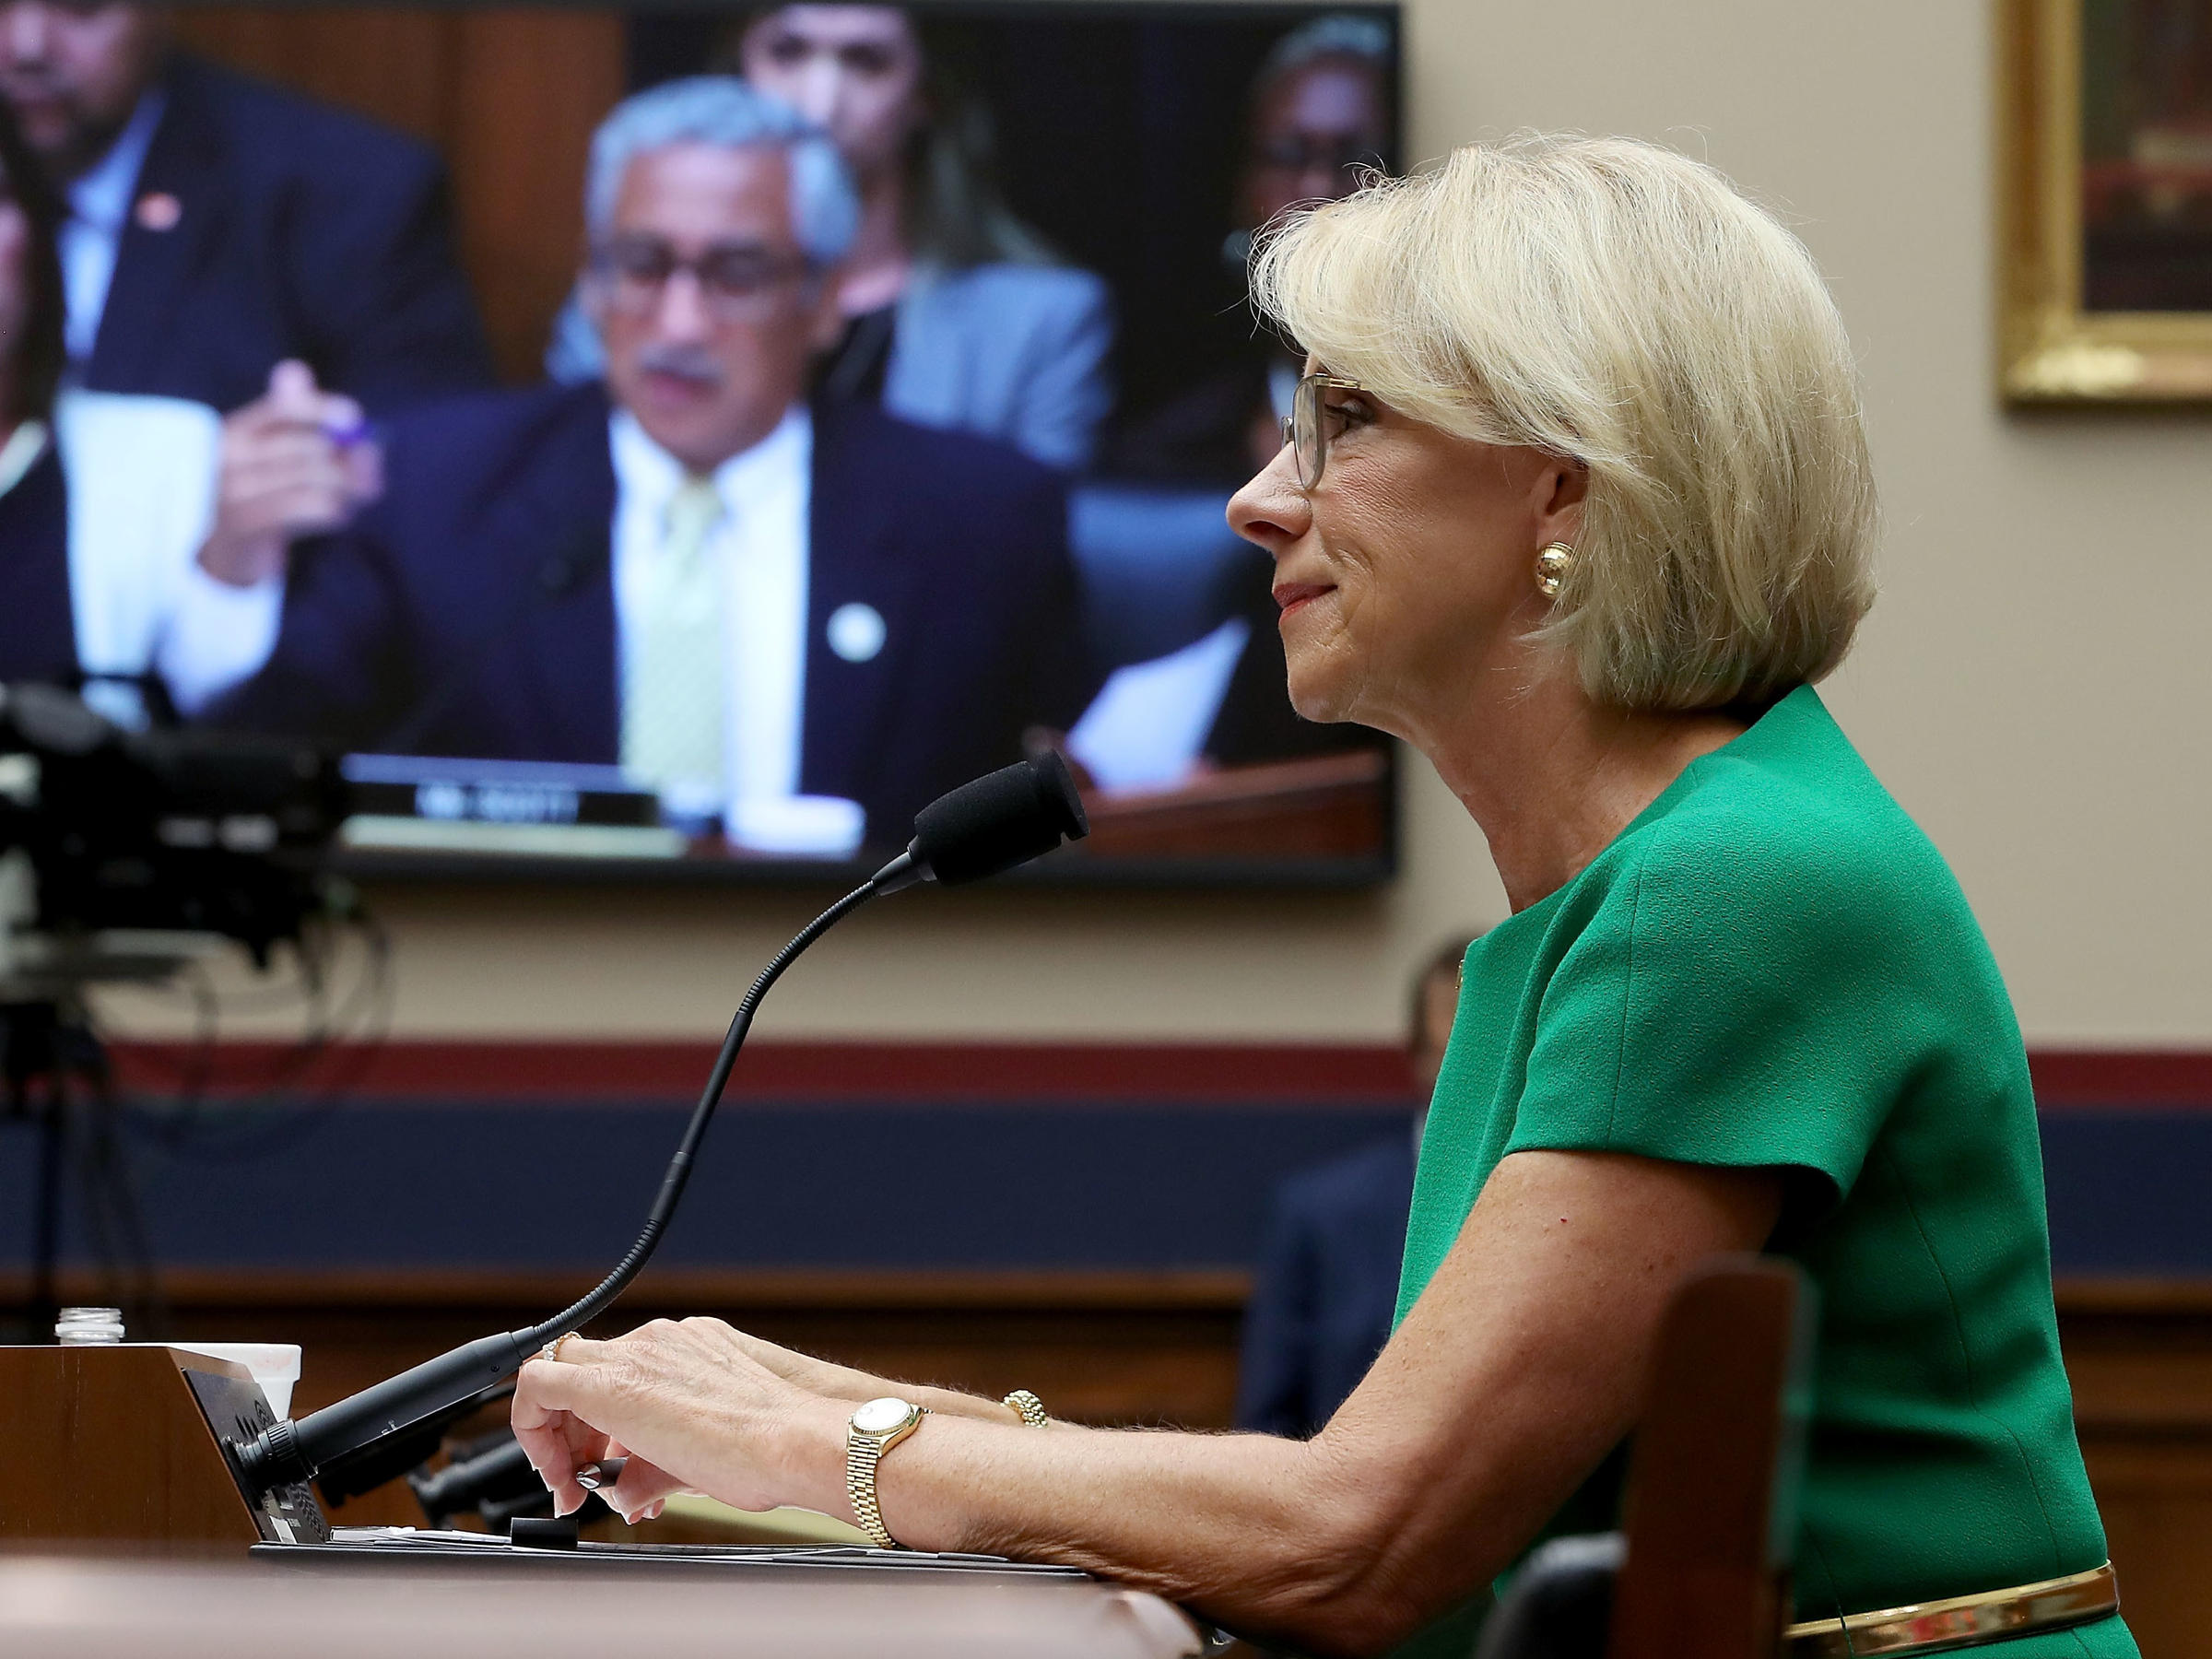 Education Secretary Betsy DeVos answers questions by Rep Bobby Scott D Va on video screen during a House Education and the Workforce mittee hearing